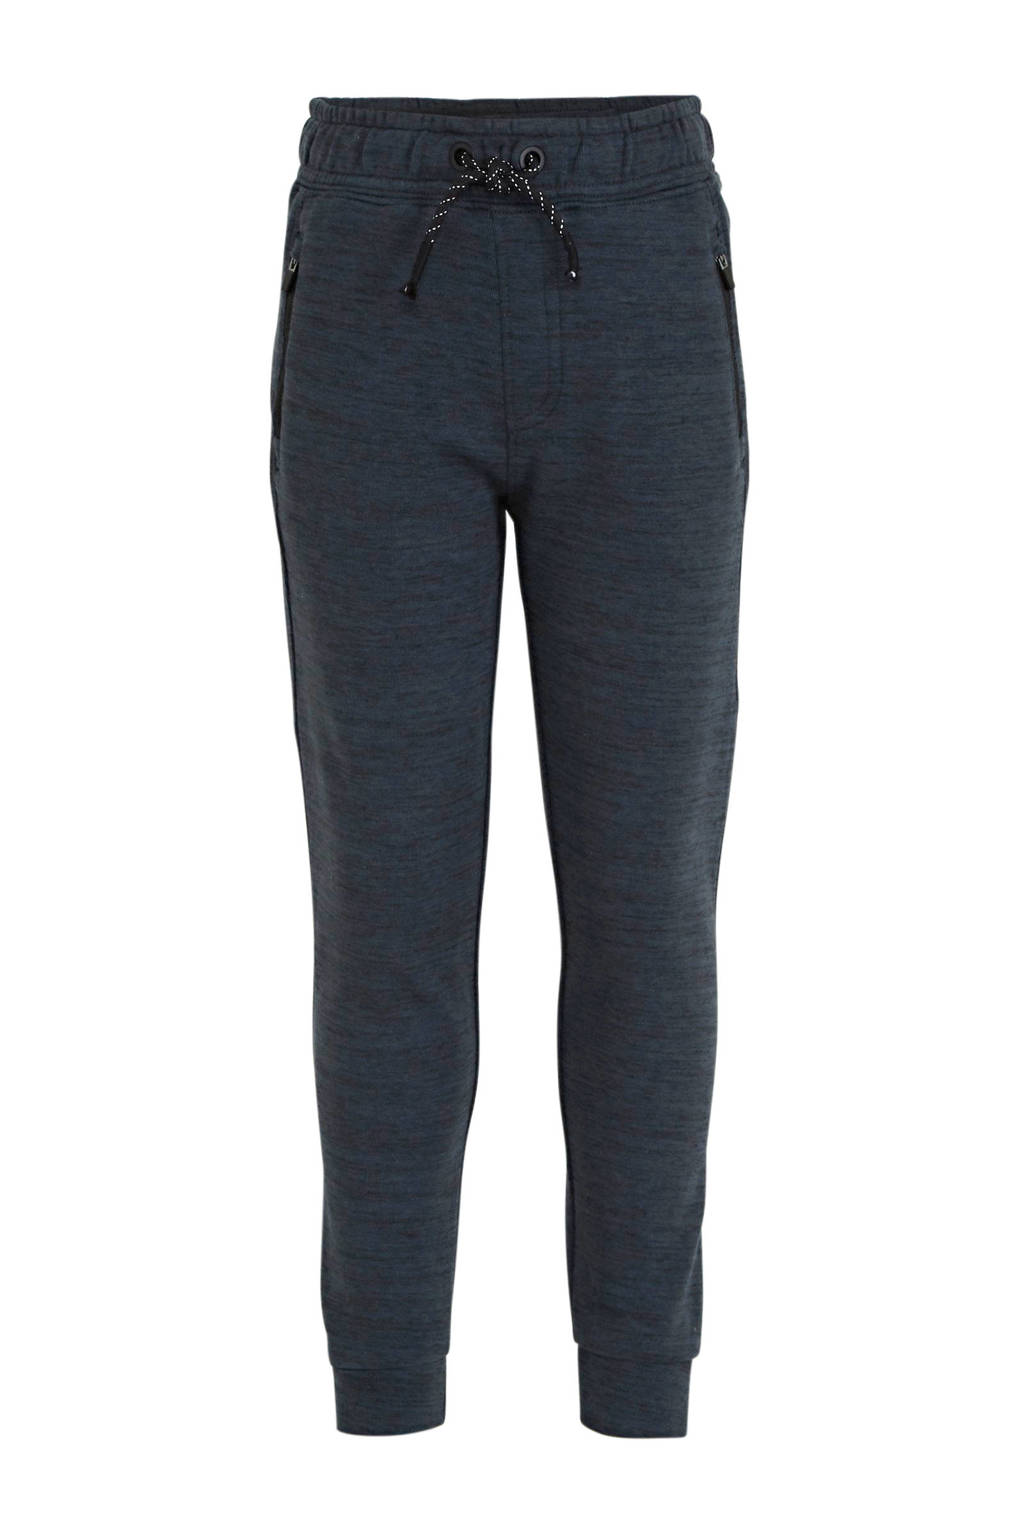 NAME IT KIDS gemêleerde broek Scott donkerblauw, Donkerblauw